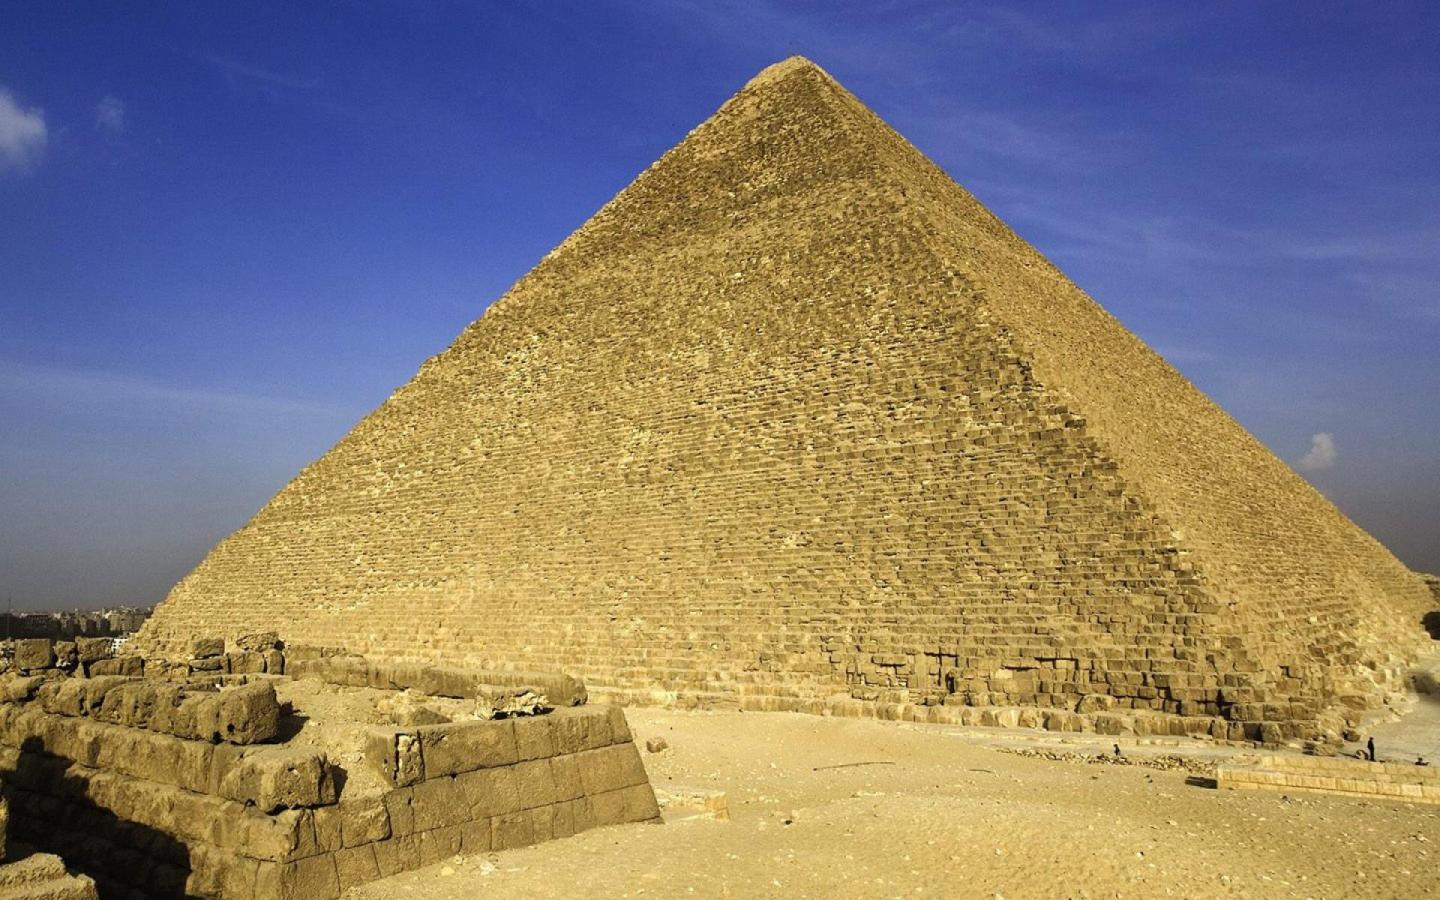 1440x900 the great pyramid at giza egypt desktop pc and for Home wallpaper egypt